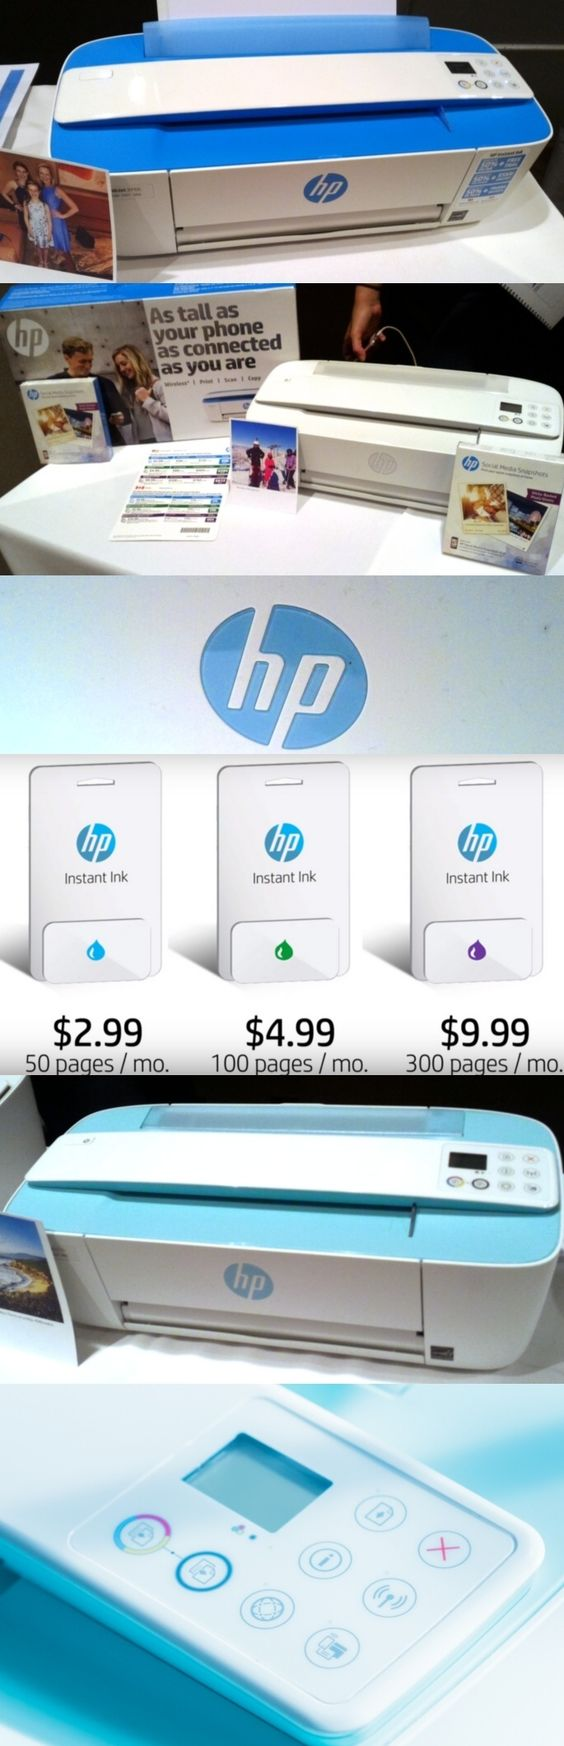 The HP DeskJet 3755 wireless inkjet printer, billed as the world's smallest all-in-one, measures just 16.7 by 7 by 5.4 inches (WDH). It has a motorized sheet scanner instead of a glass panel for scanning docs and comes in Electric Blue, Sea Grass Green or Stone. The $70 unit can be managed with free apps and the optional @hewlettpackard Instant Ink program ($2.99 to $9.99/mo. based on pages) guarantees that users won't run out of ink: The unit alerts HP as the ink supply runs low…